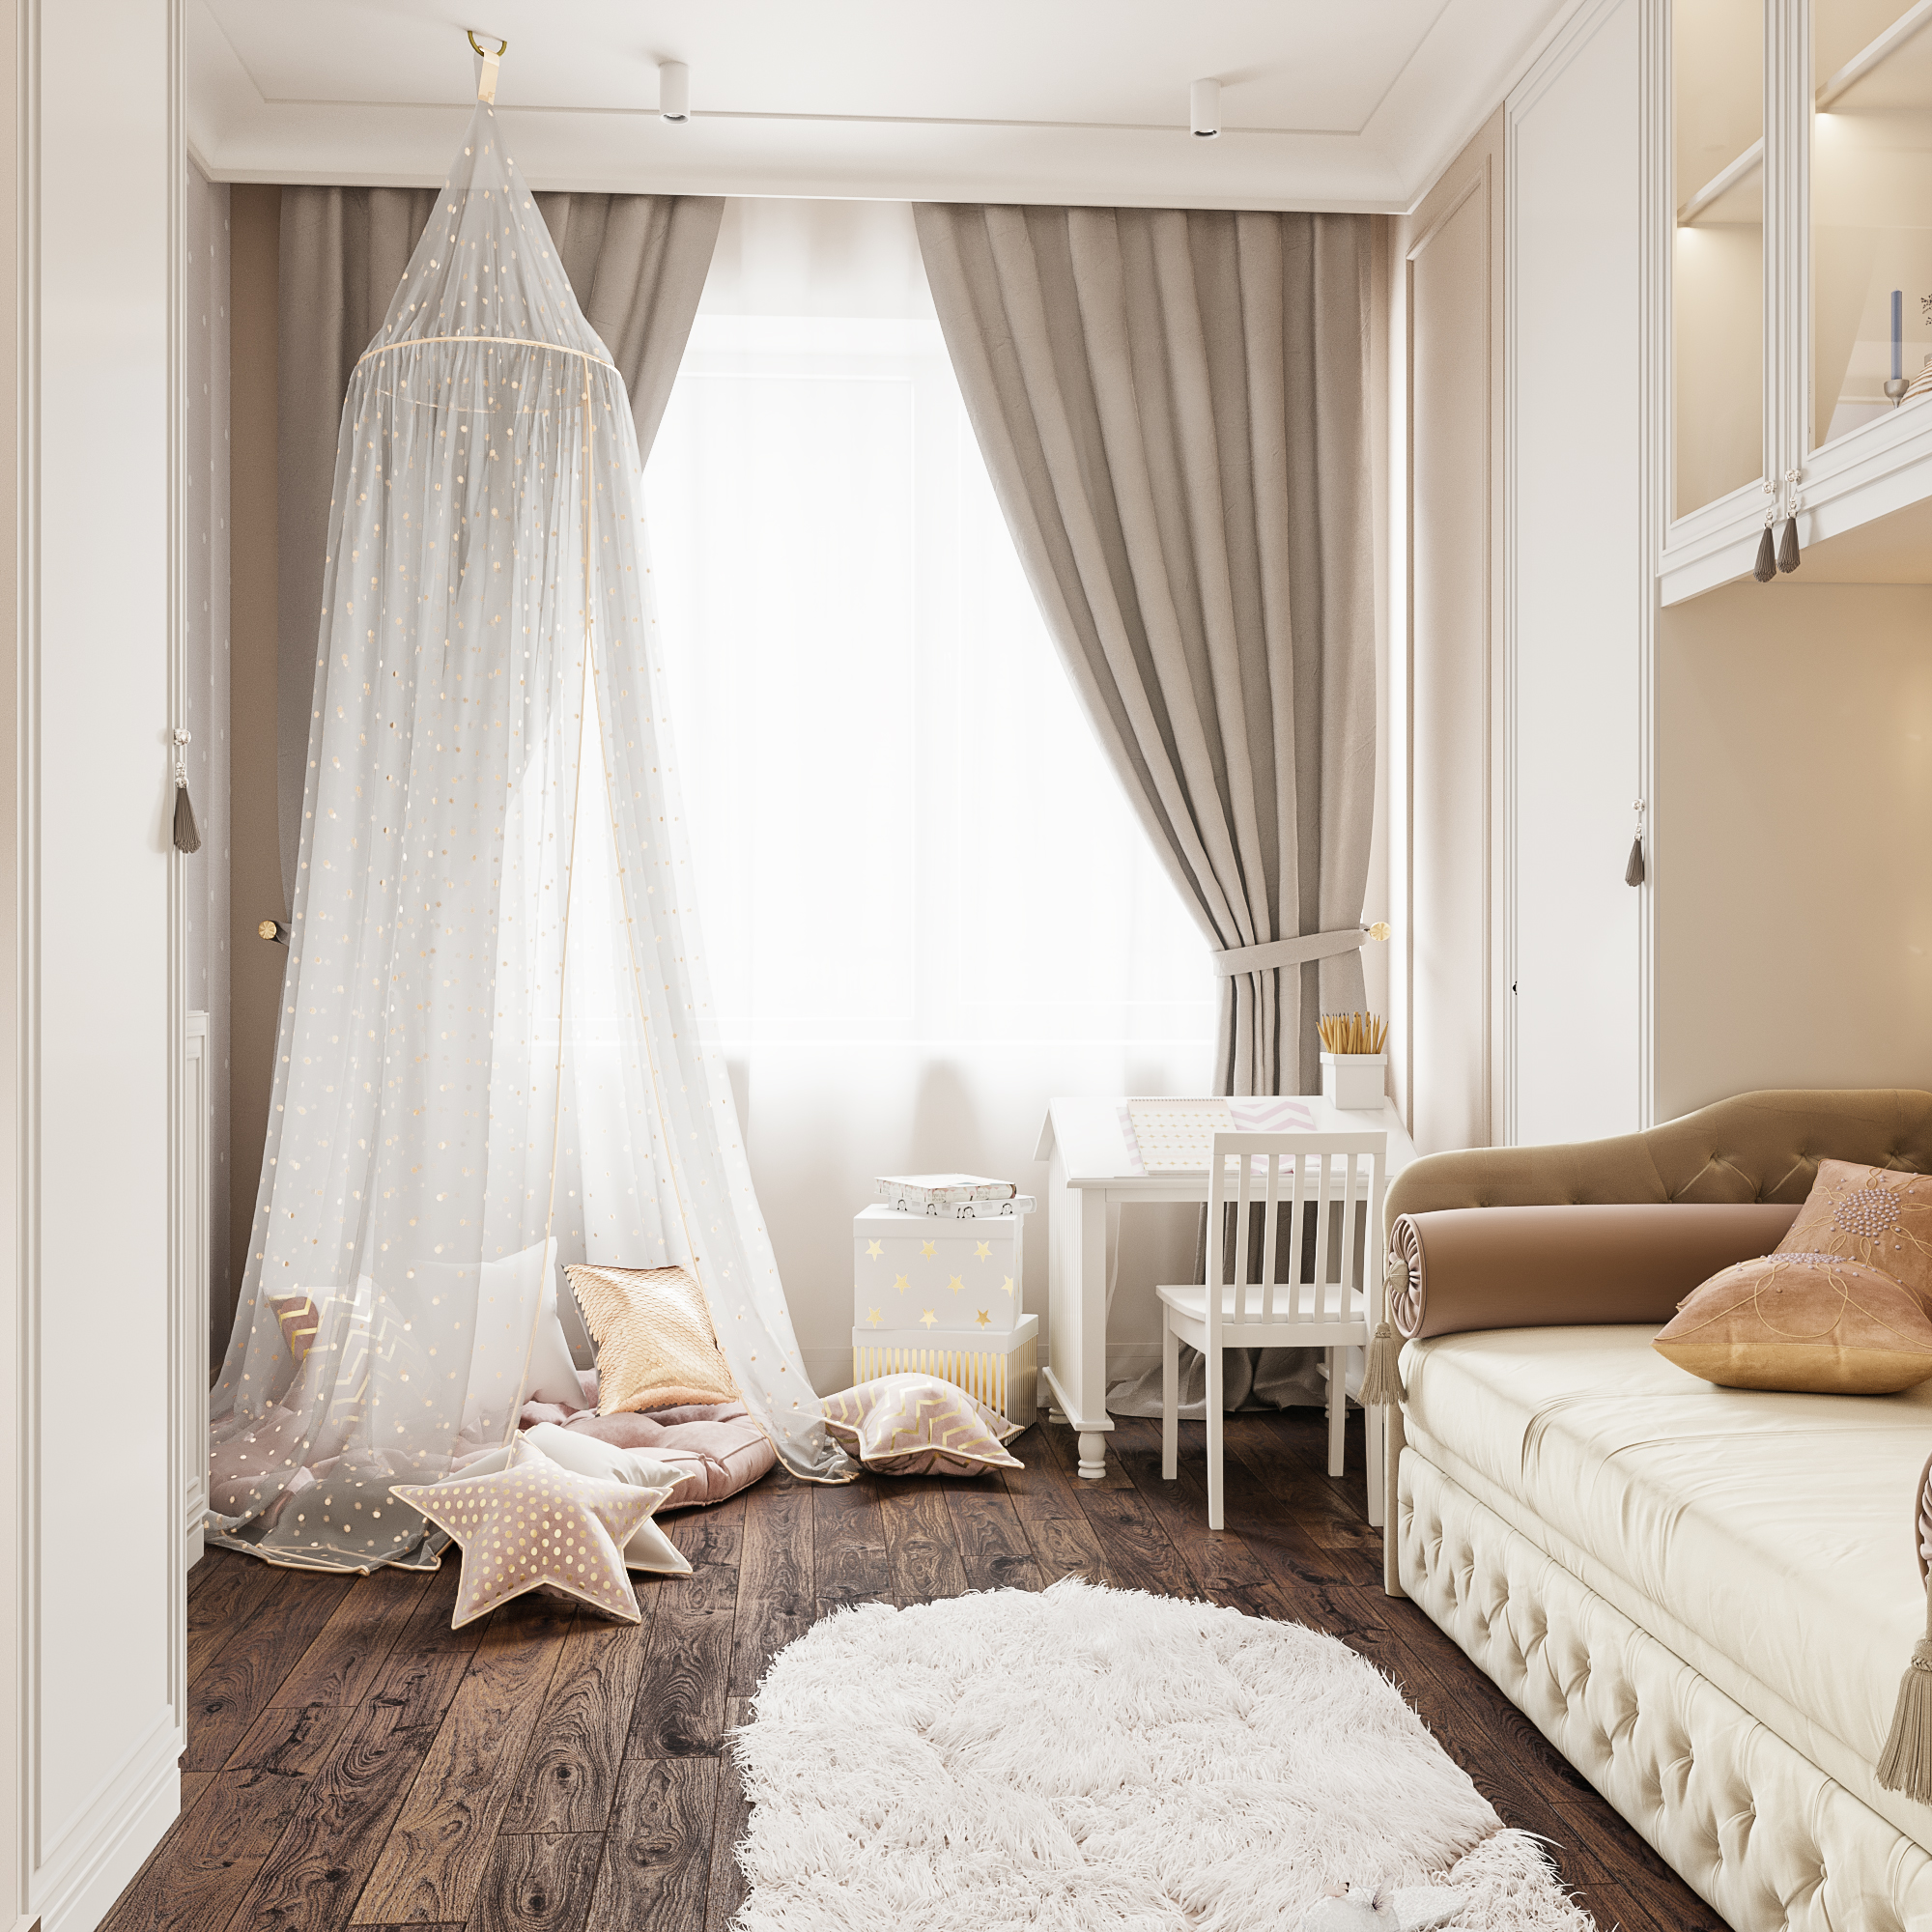 Children's room for a girl in 3d max corona render image